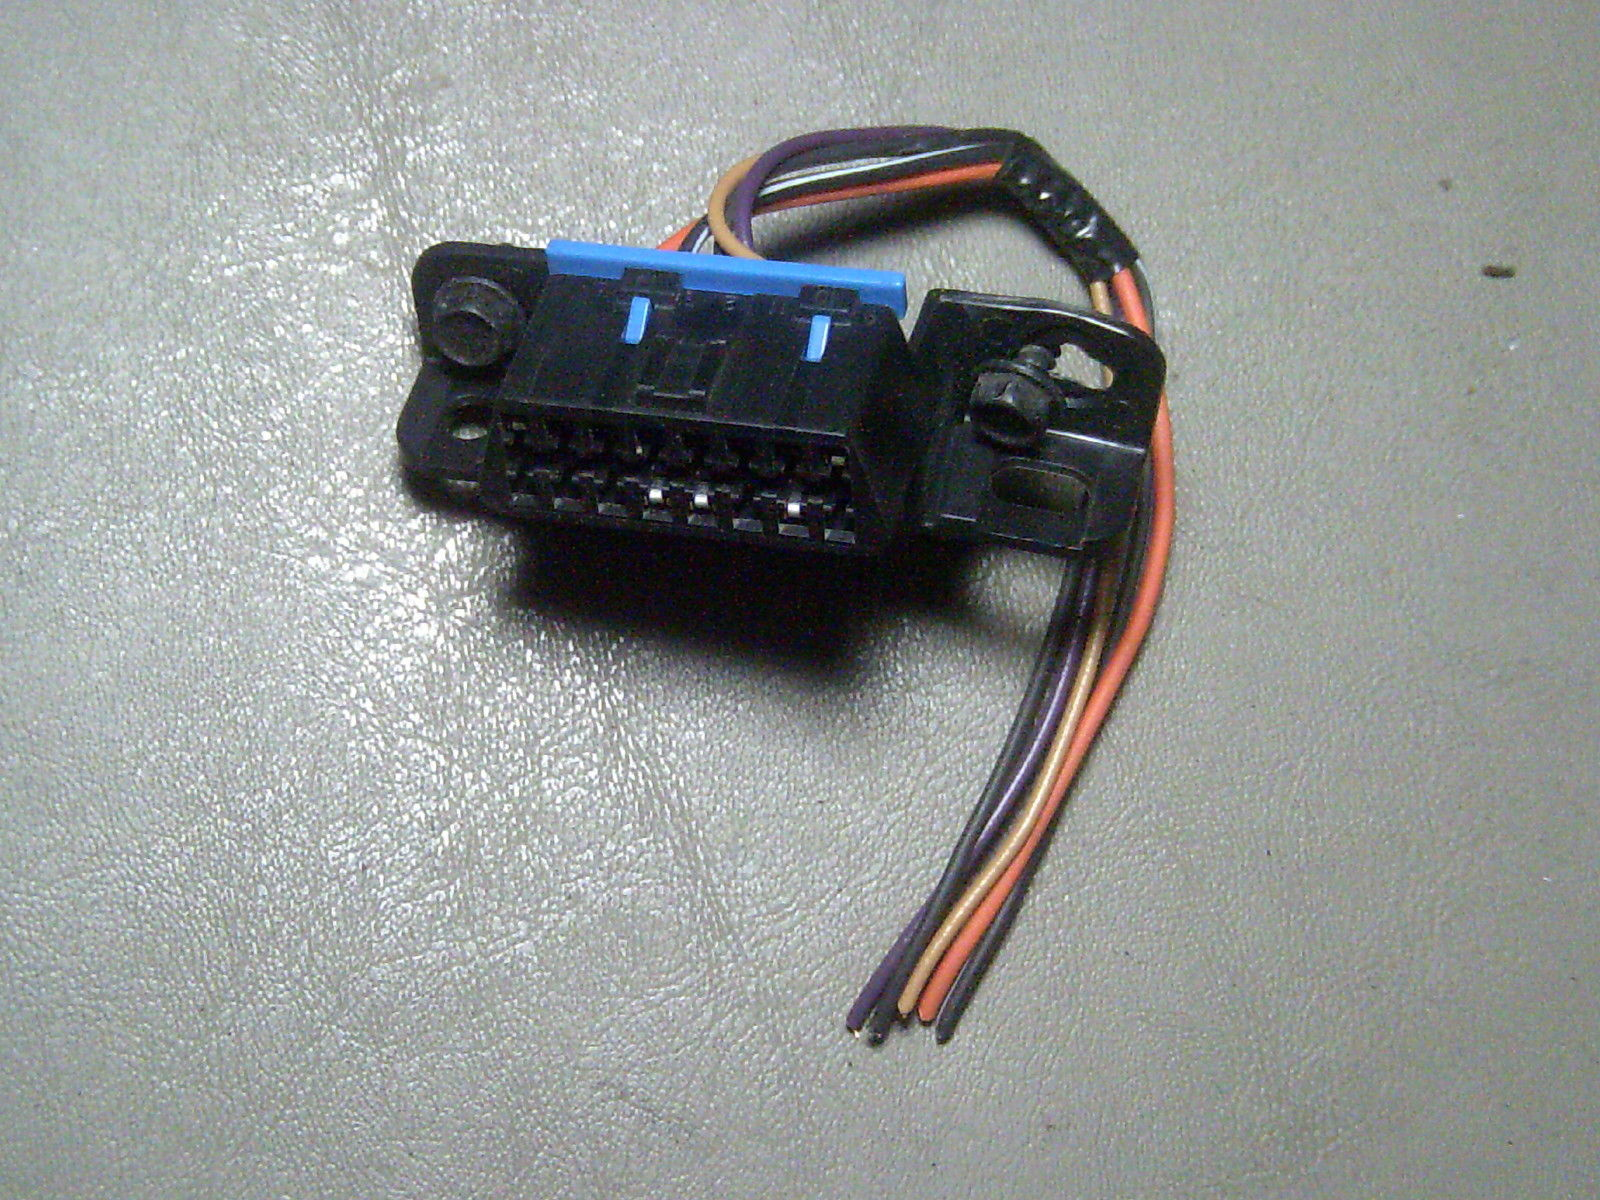 Primary image for 98 Camaro 3.8 3.8L Under Dash Diagnostic Plug Connector With Pigtail Wires